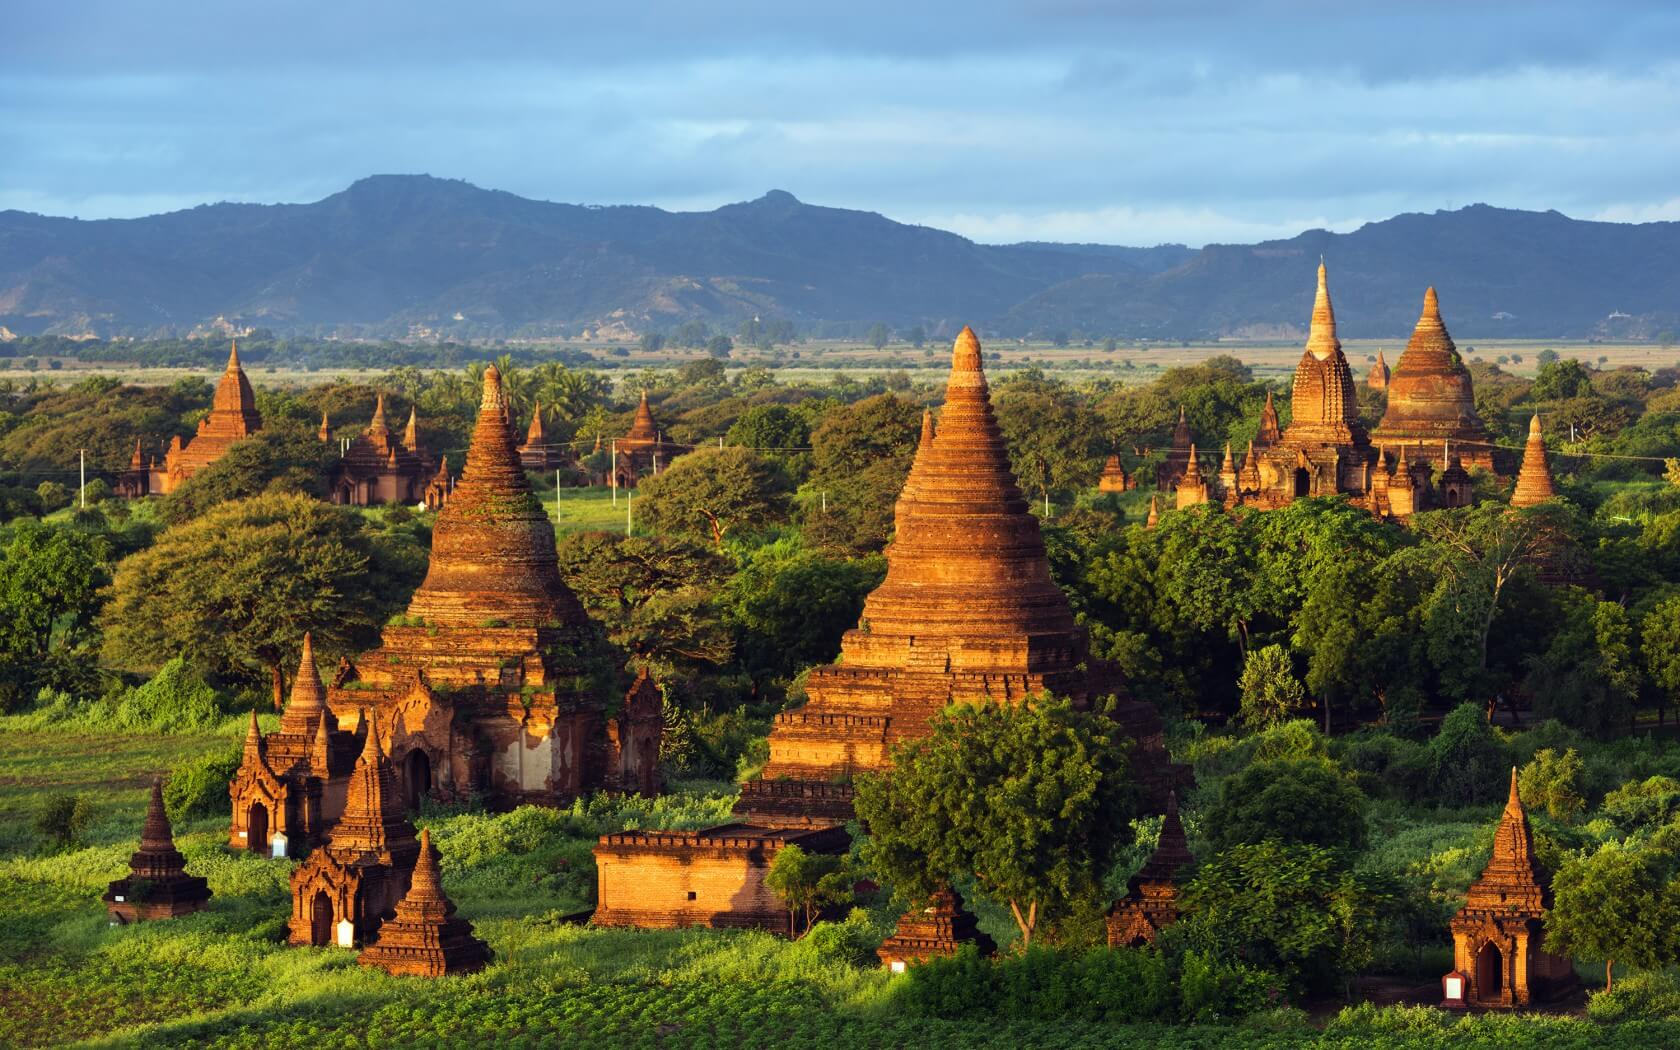 Yangon to Bagan Tour - Travel to Bagan from Yangon by bus After The Sunset